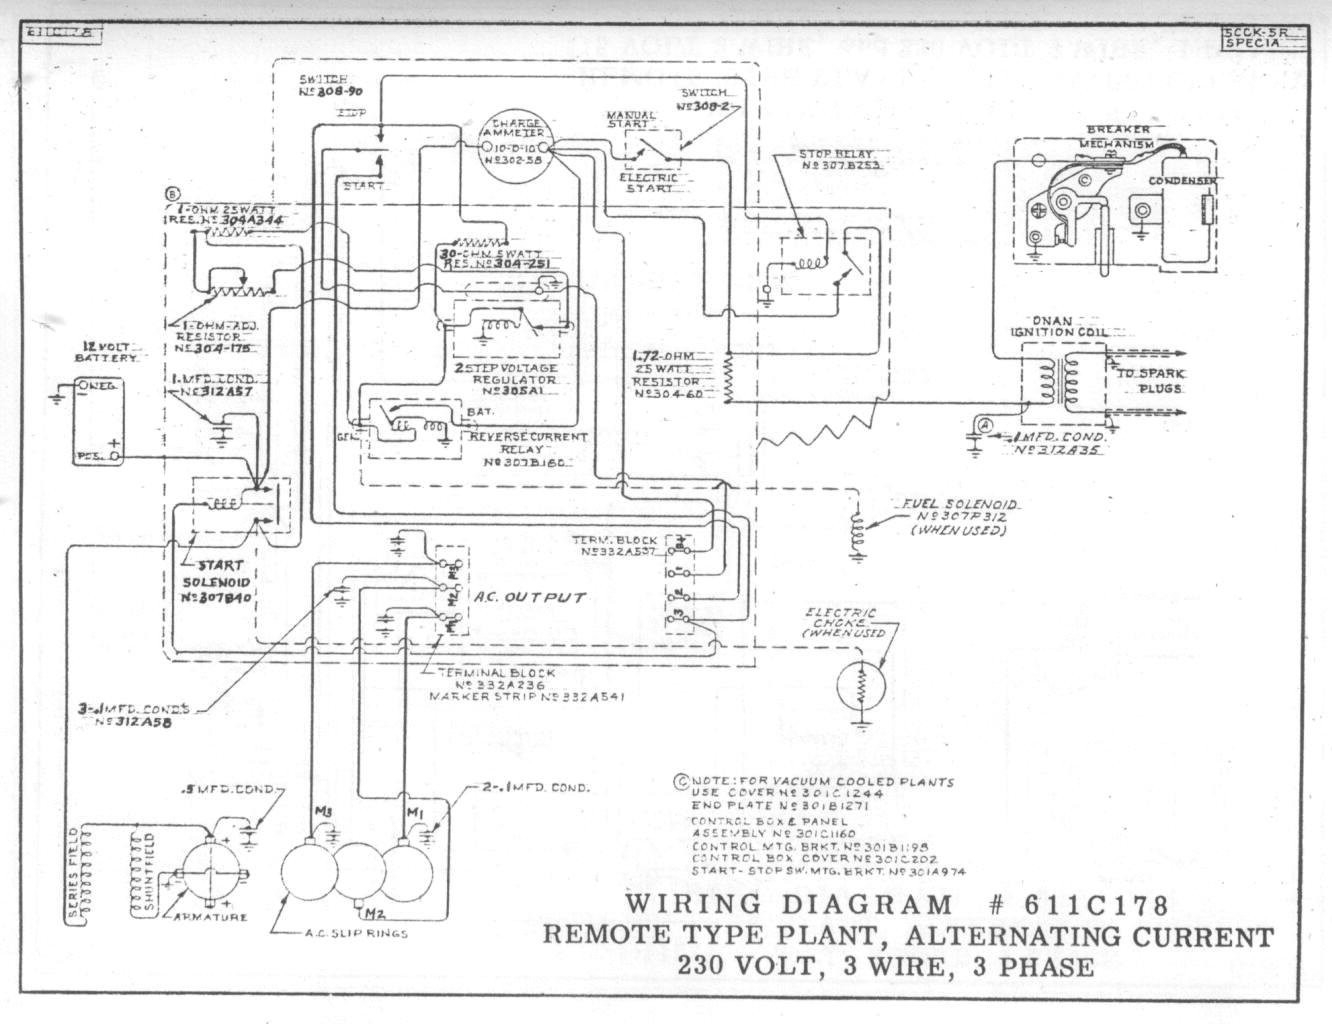 DIAGRAM] Astra 4000 Rs Remote Start Wiring Diagram FULL ... on